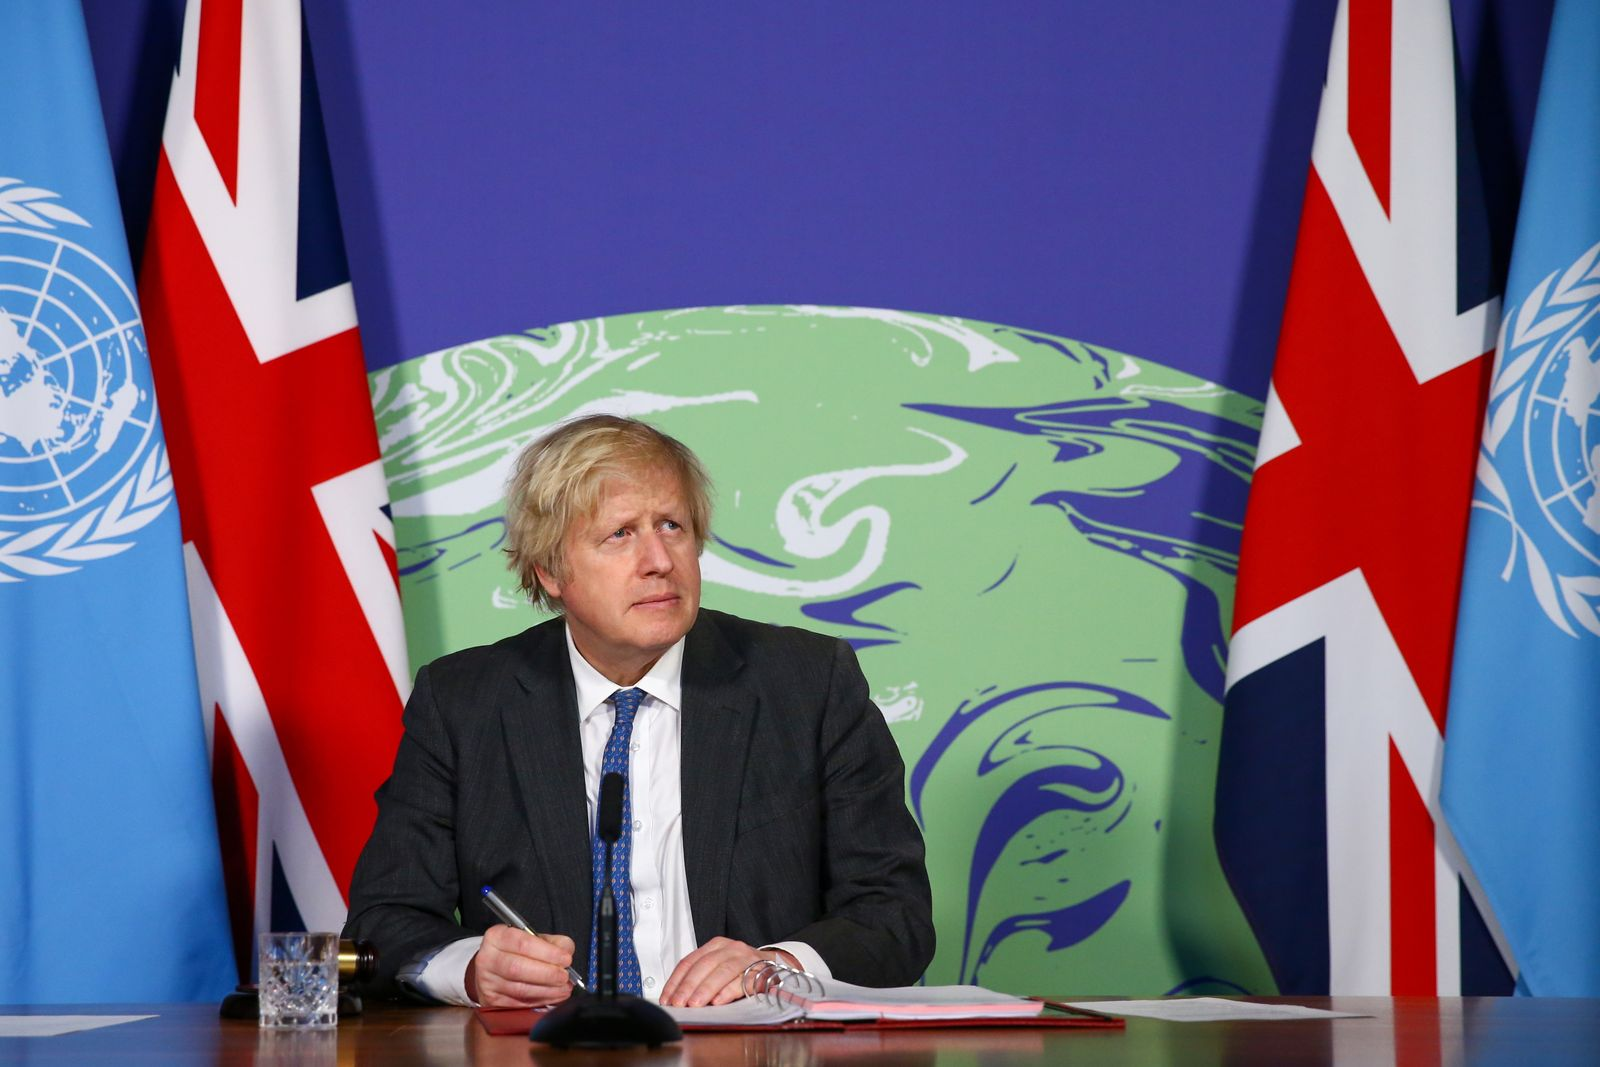 British PM Boris Johnson chairs UN Security Council on climate and security